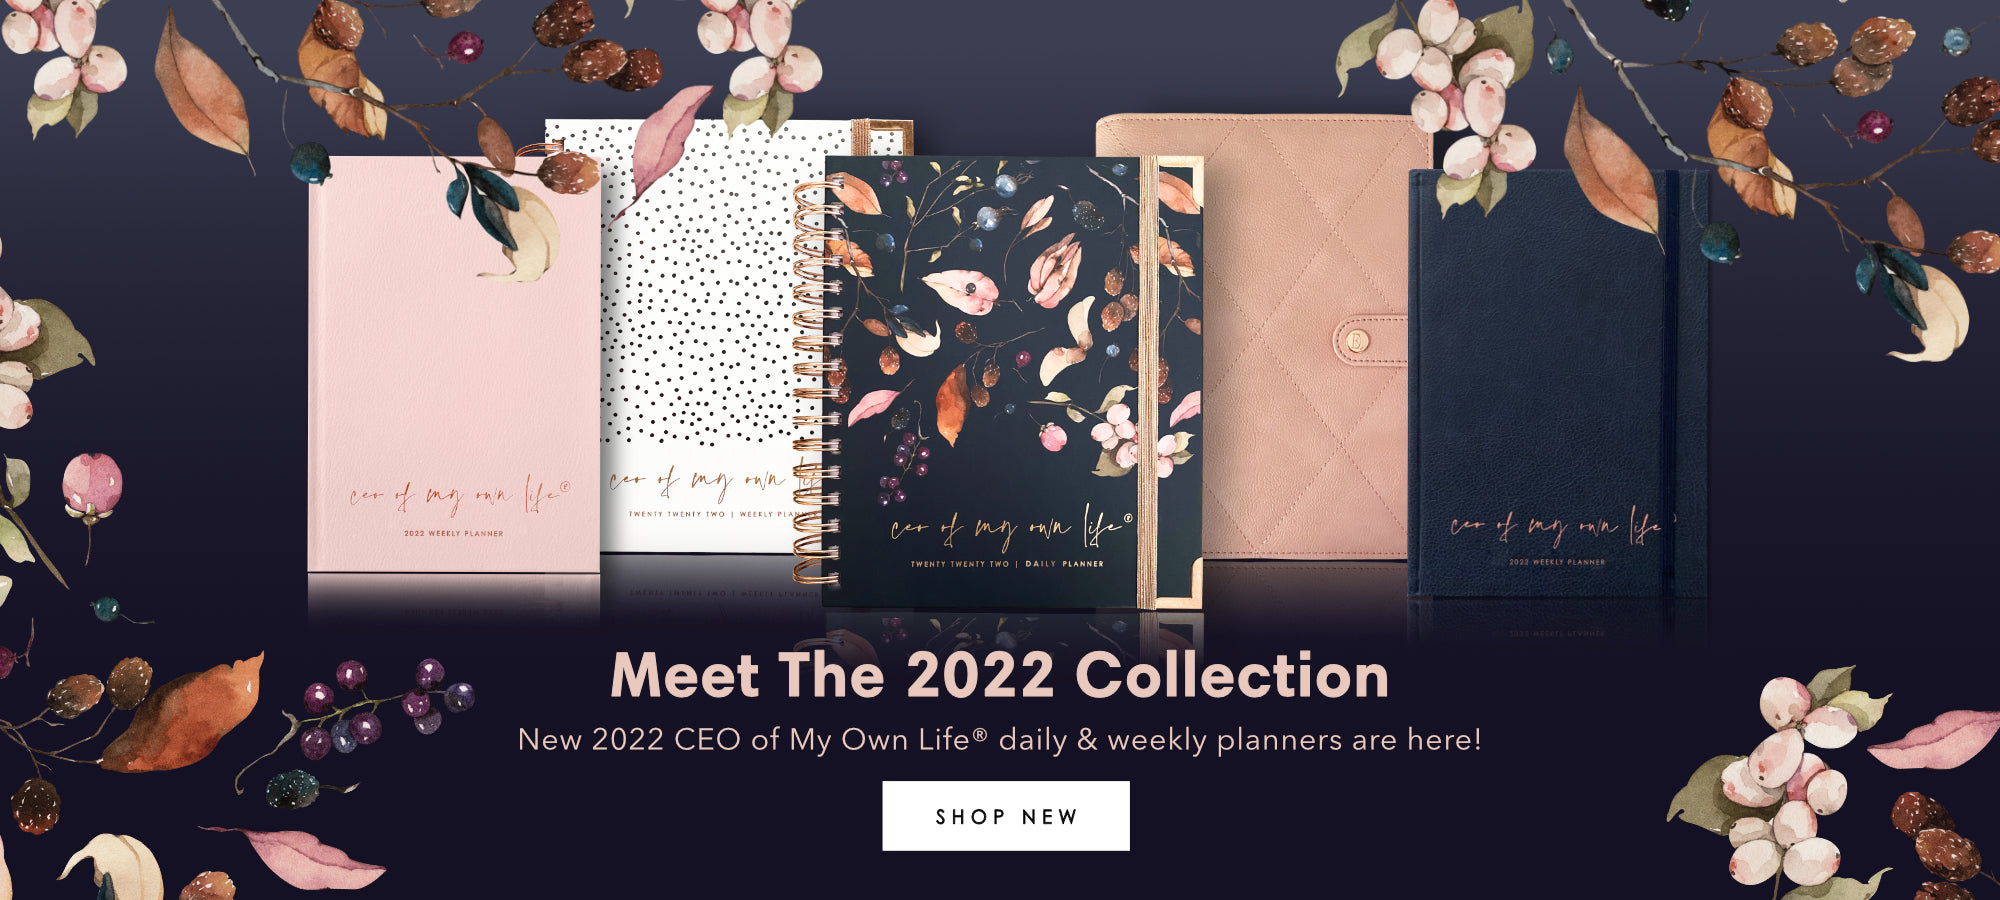 Ella Iconic Stationery • 2022 Daily & Weekly Life Planners • CEO of My Own Life®